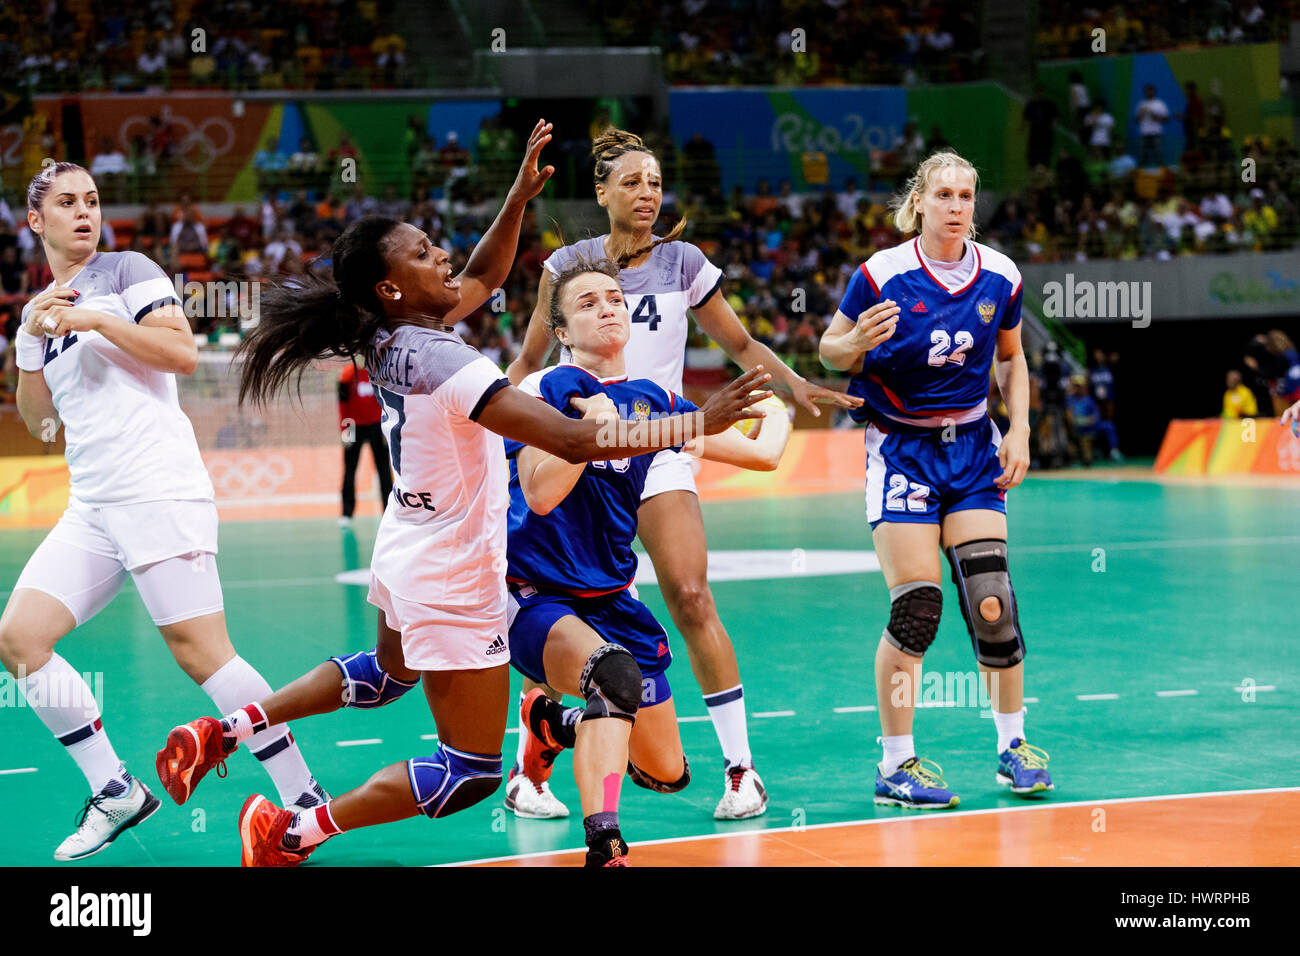 Rio de Janeiro, Brazil. 20 August 2016 Siraba Dembele (FRA) #17 and Anna Vyakhireva (RUS) #13 competes in the women's - Stock Image